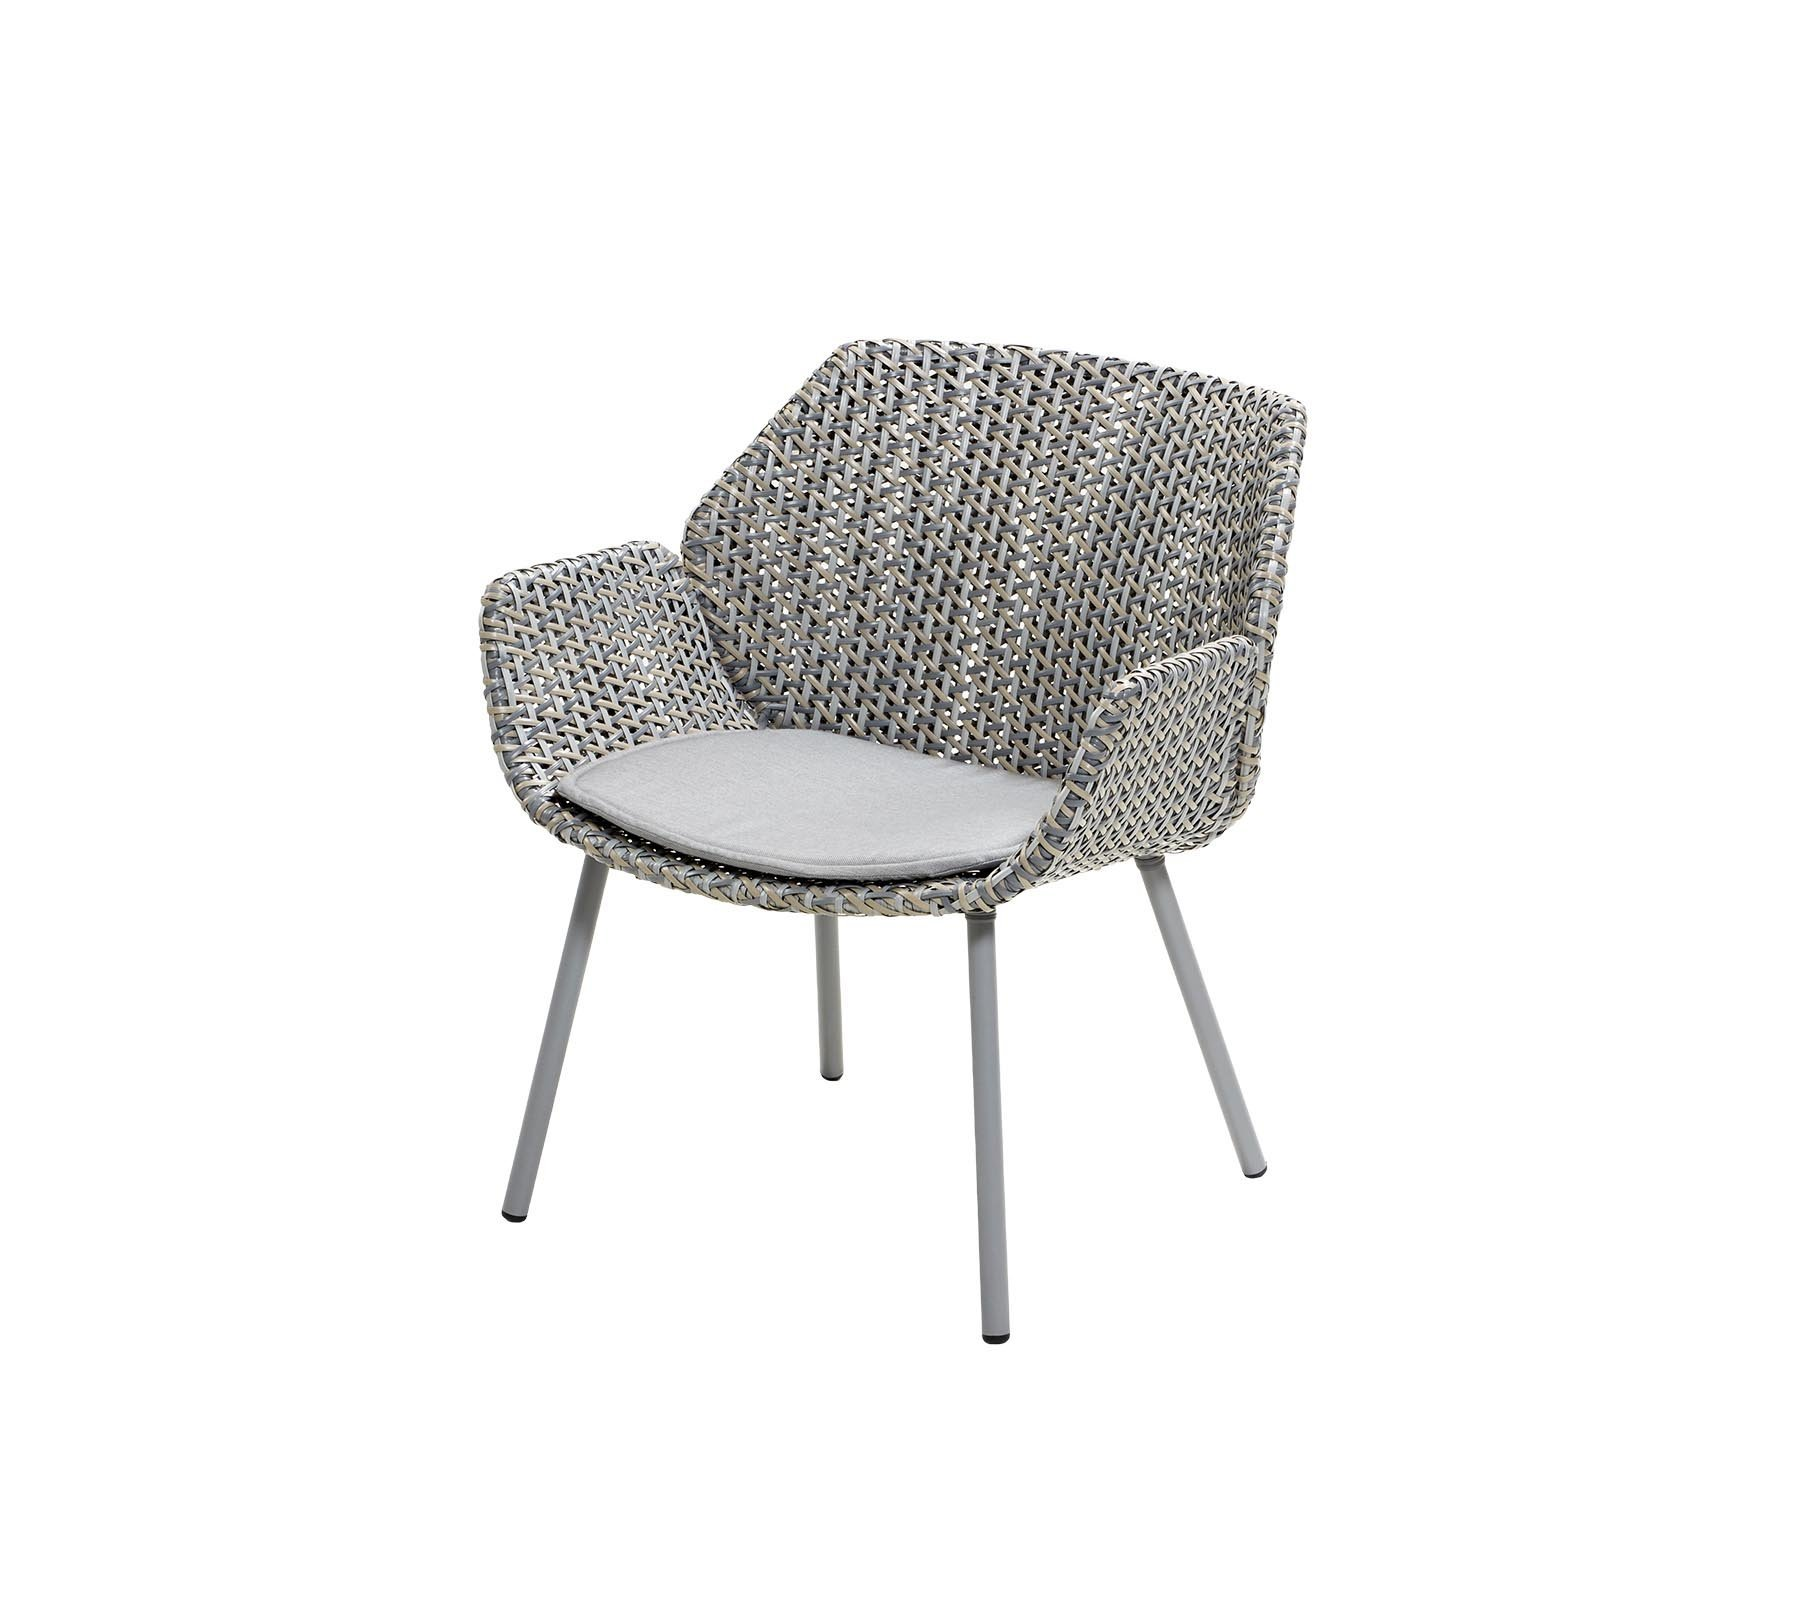 Vibe Chair lounge from Cane-line, designed by Welling/Ludvik